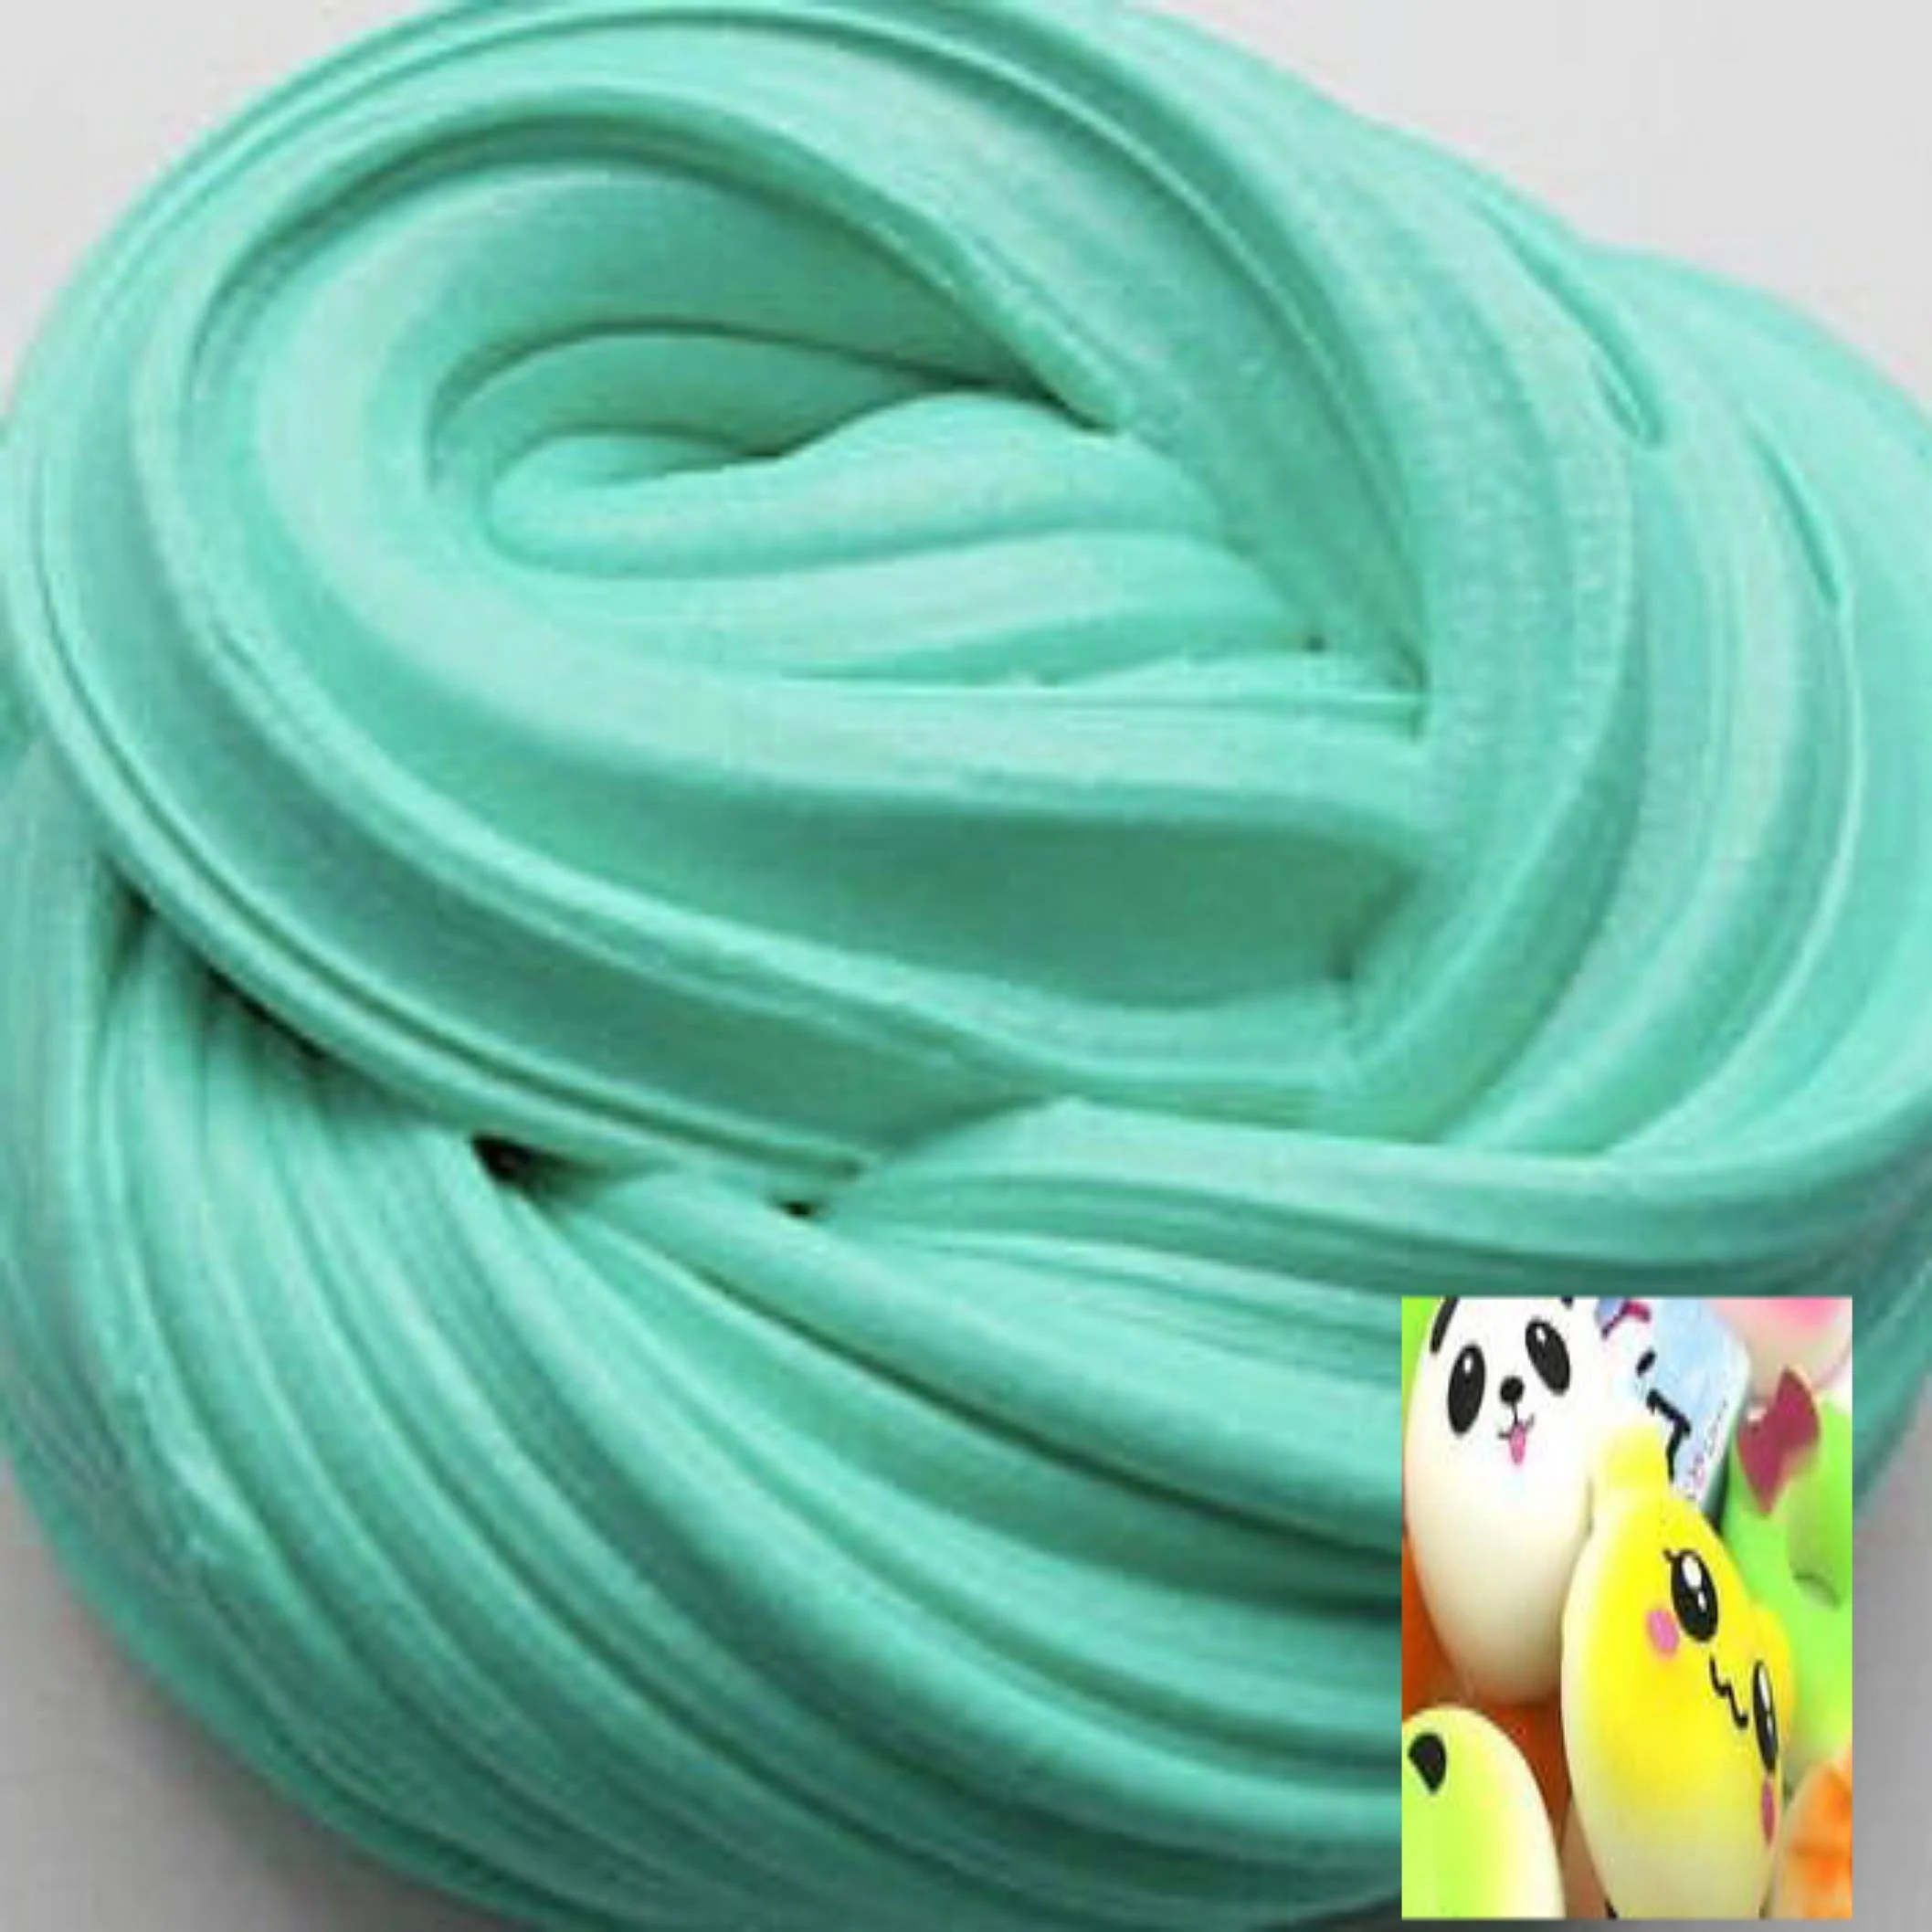 Slime Badkamer Slime Free Squishy With Your Order Fluffy Slime Slime Shops Cheap Slime Fast Shipping Slimes Green Slimes